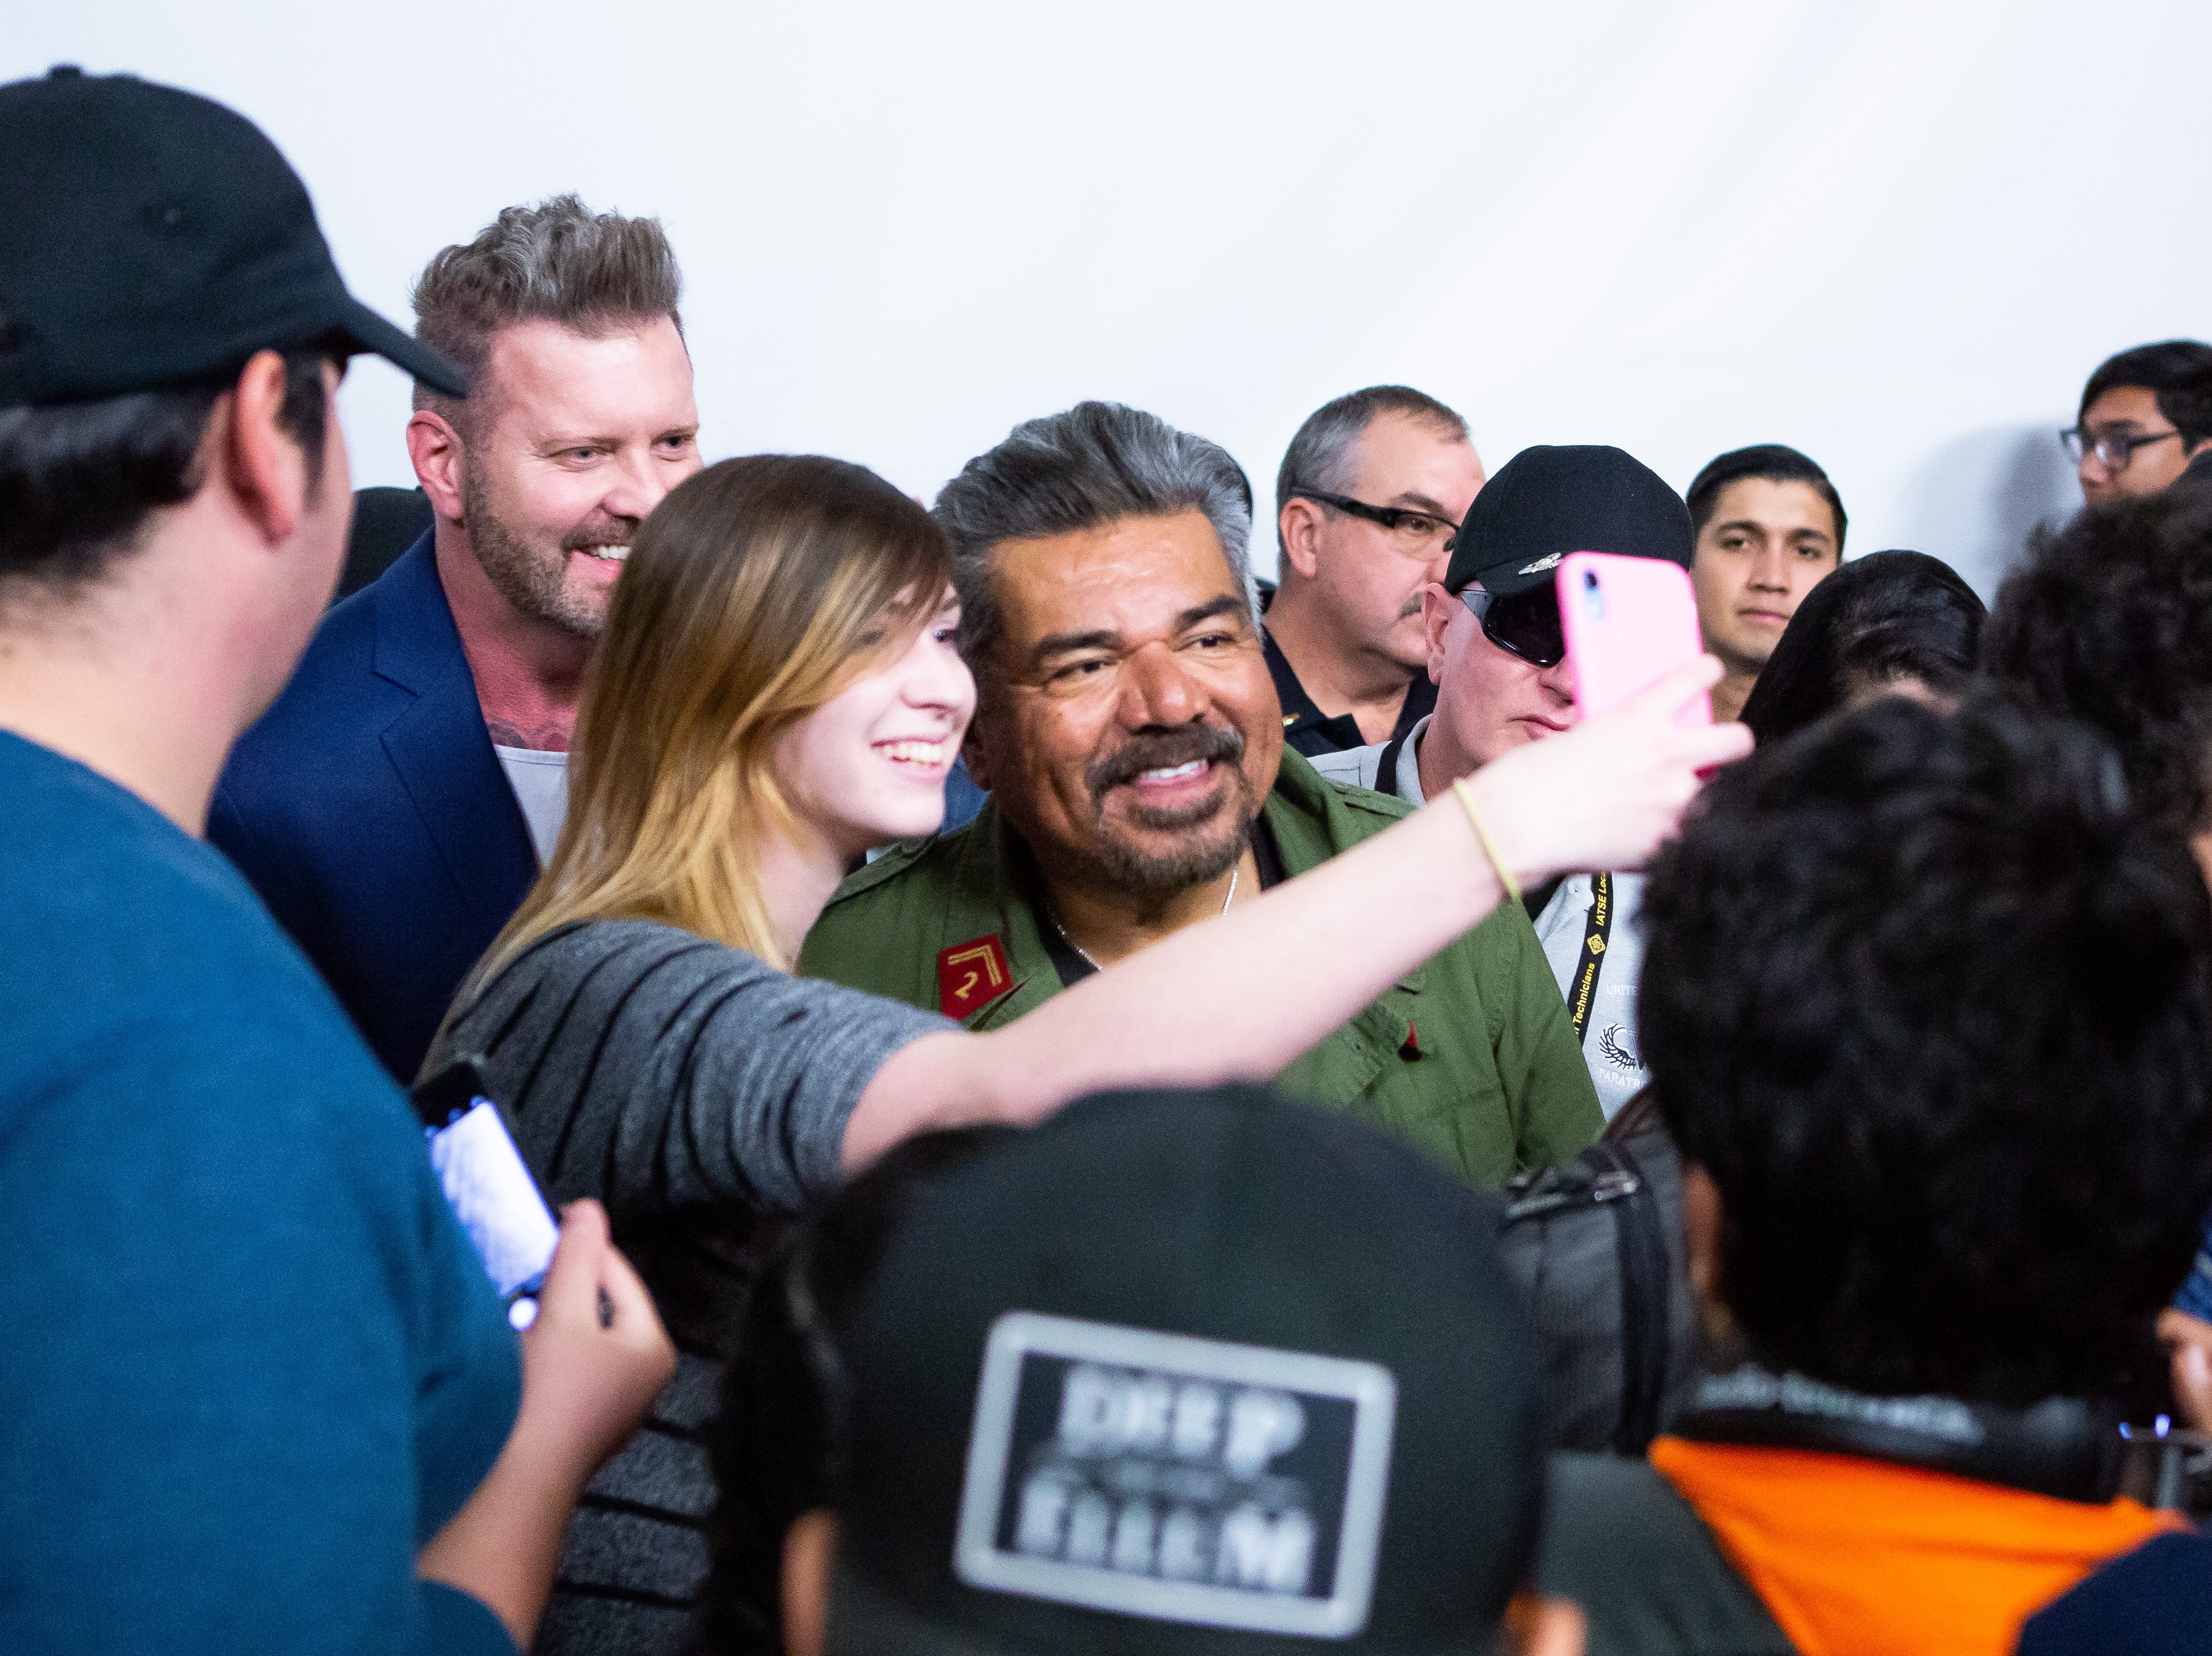 New Mexico State University student Hannah Jackosky takes a selfie with George Lopez on Thursday, Feb. 21, 2019. The actor and comedian spoke with students at Corbett Center Student Union, part of the Las Cruces International Film Festival